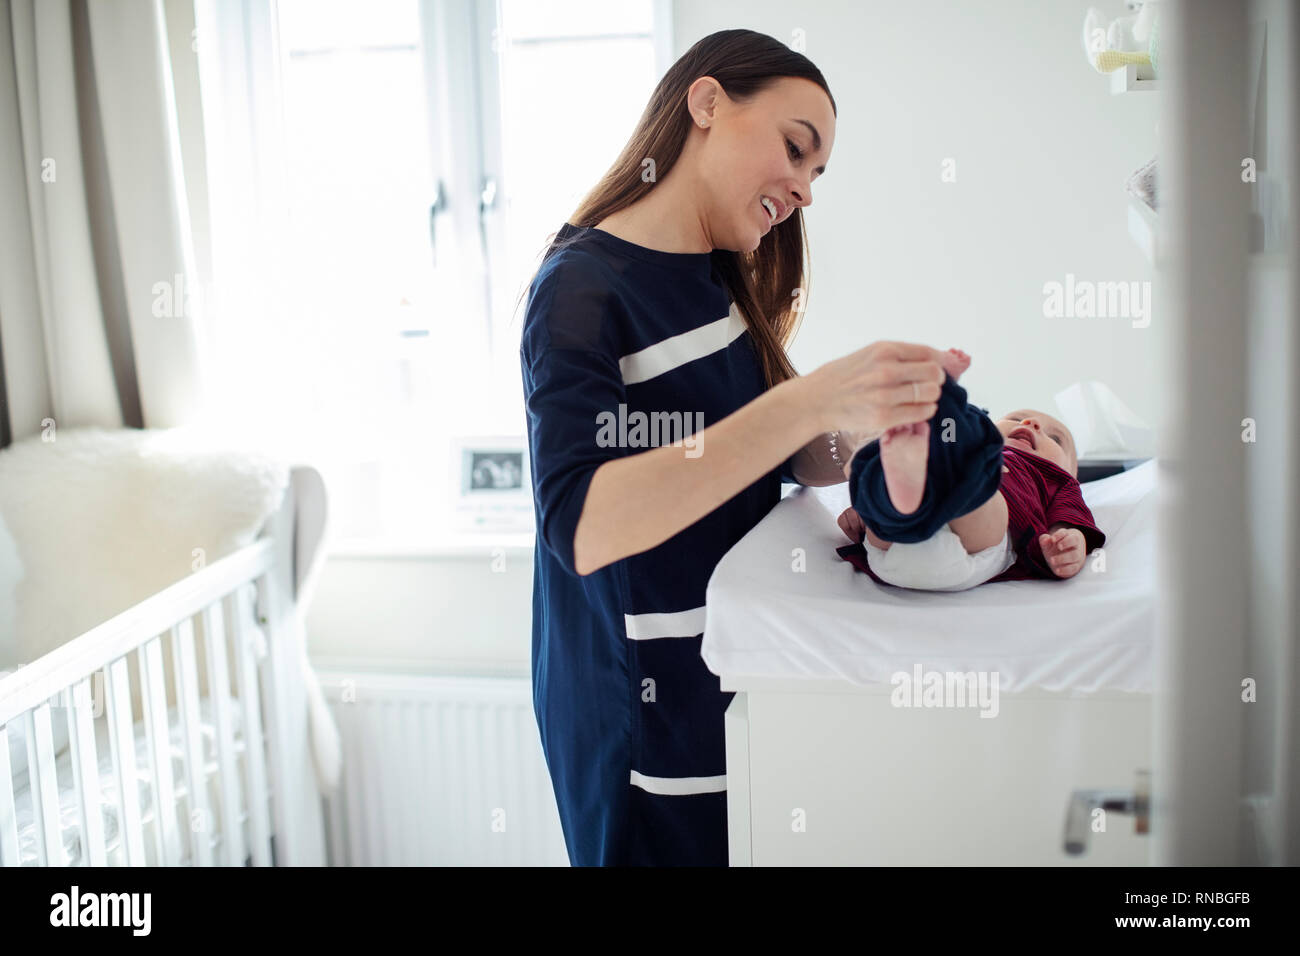 Mother In Nursery At Home Changing Baby Sons Daiper - Stock Image